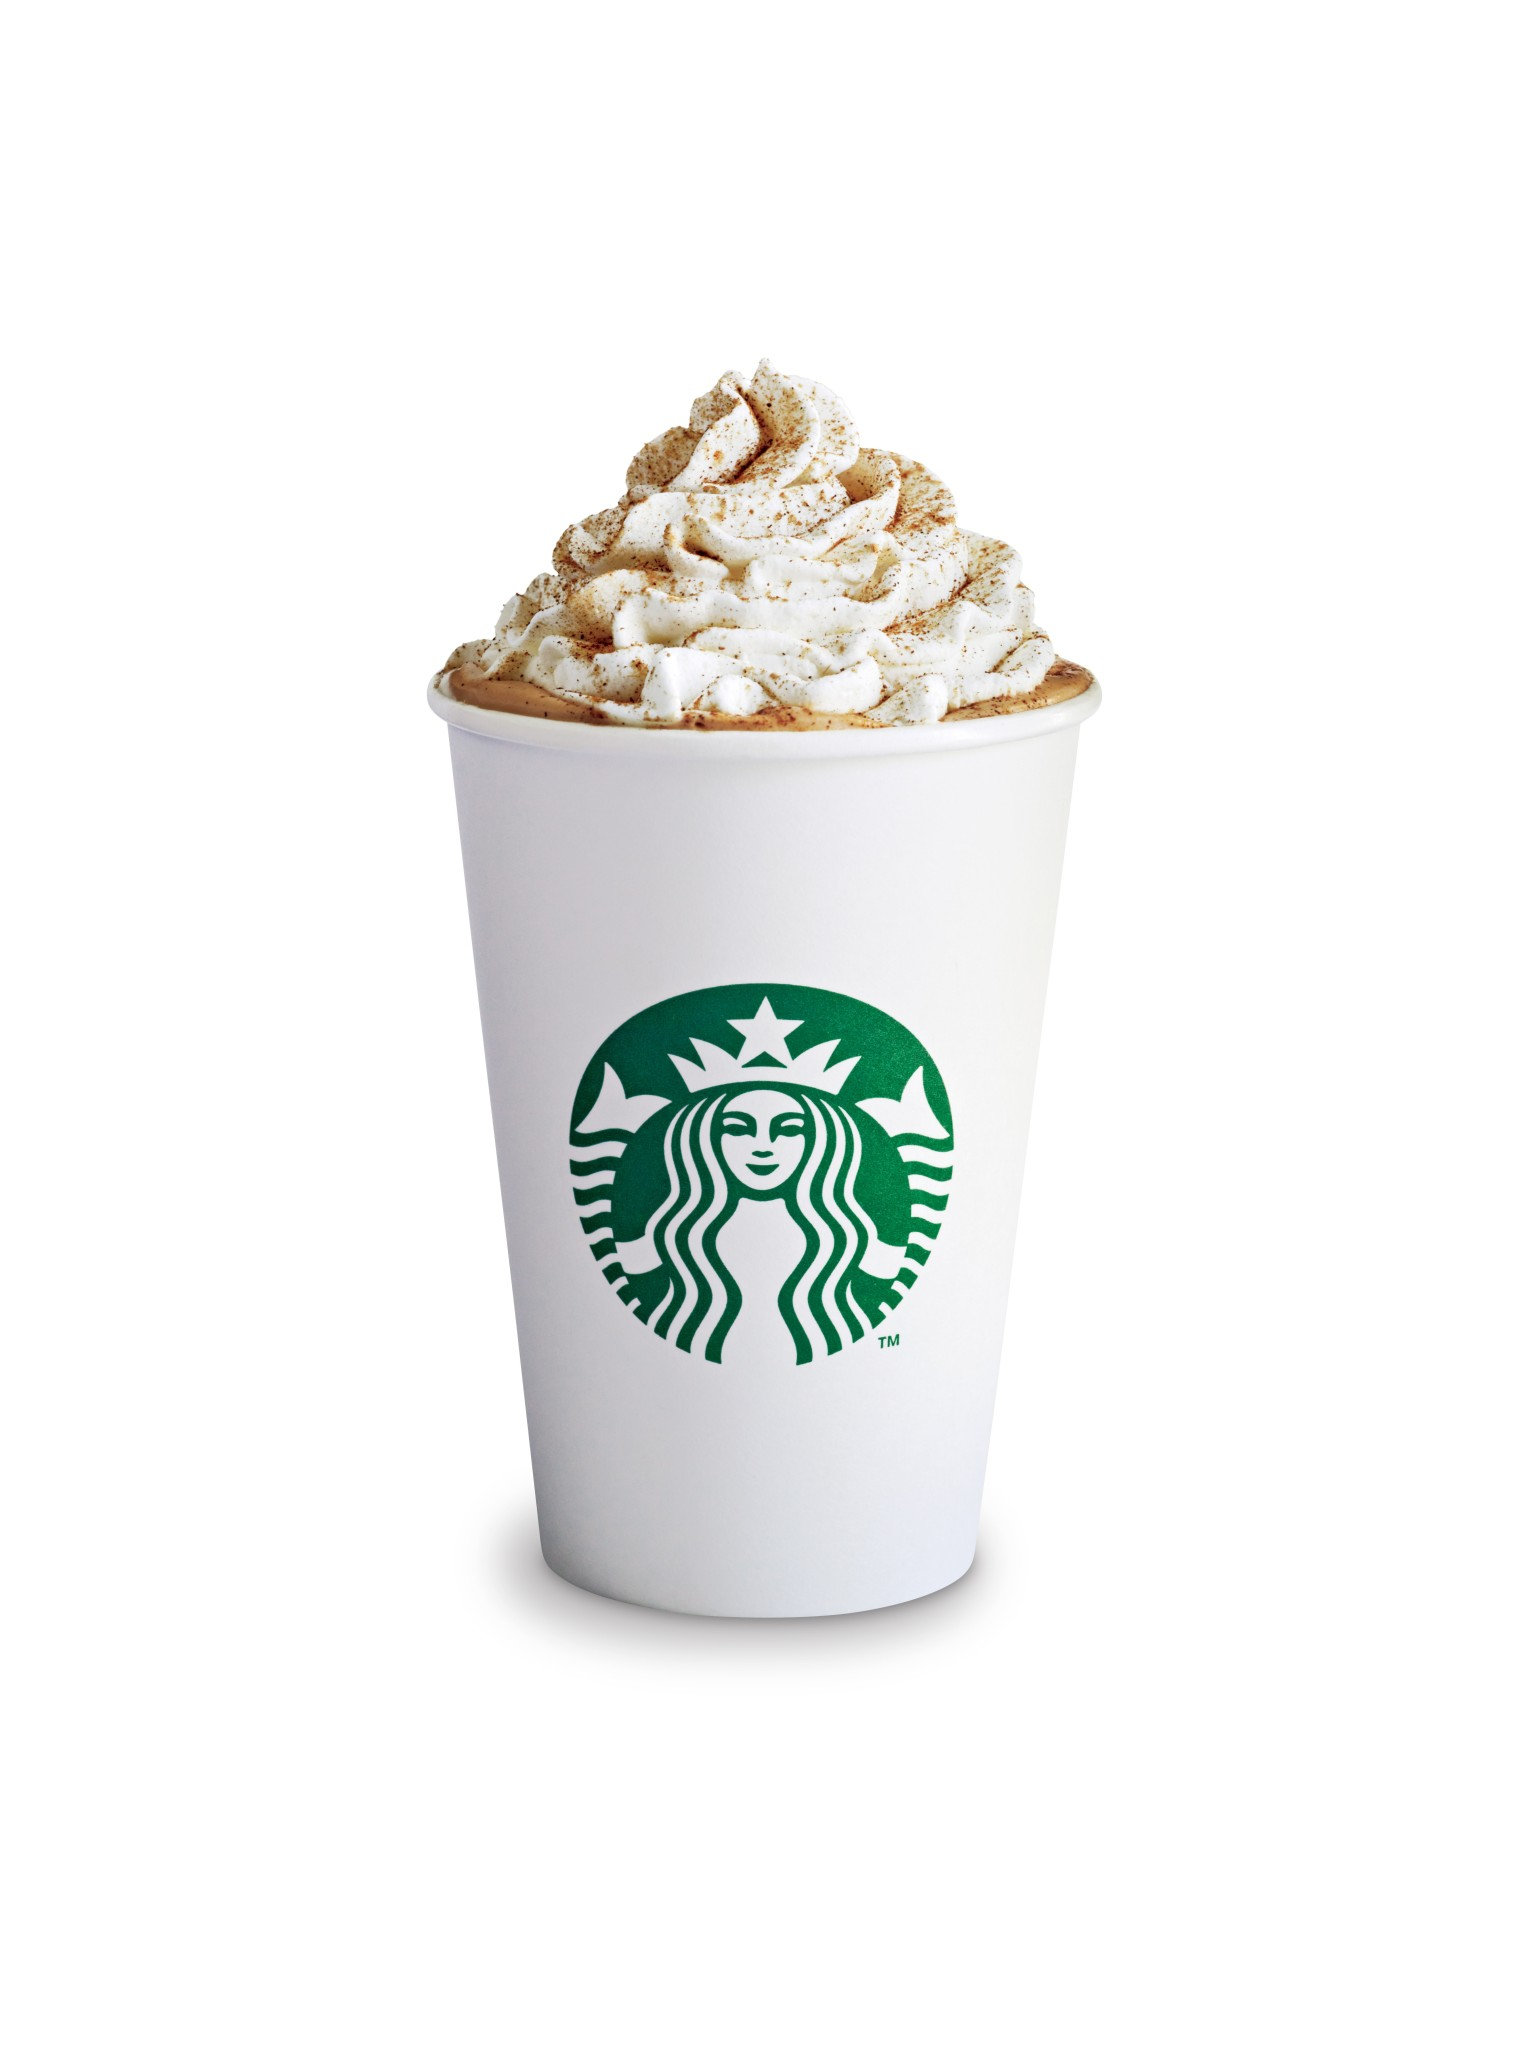 Get A Pumpkin Spice Latte Early With This Secret Code | HuffPost